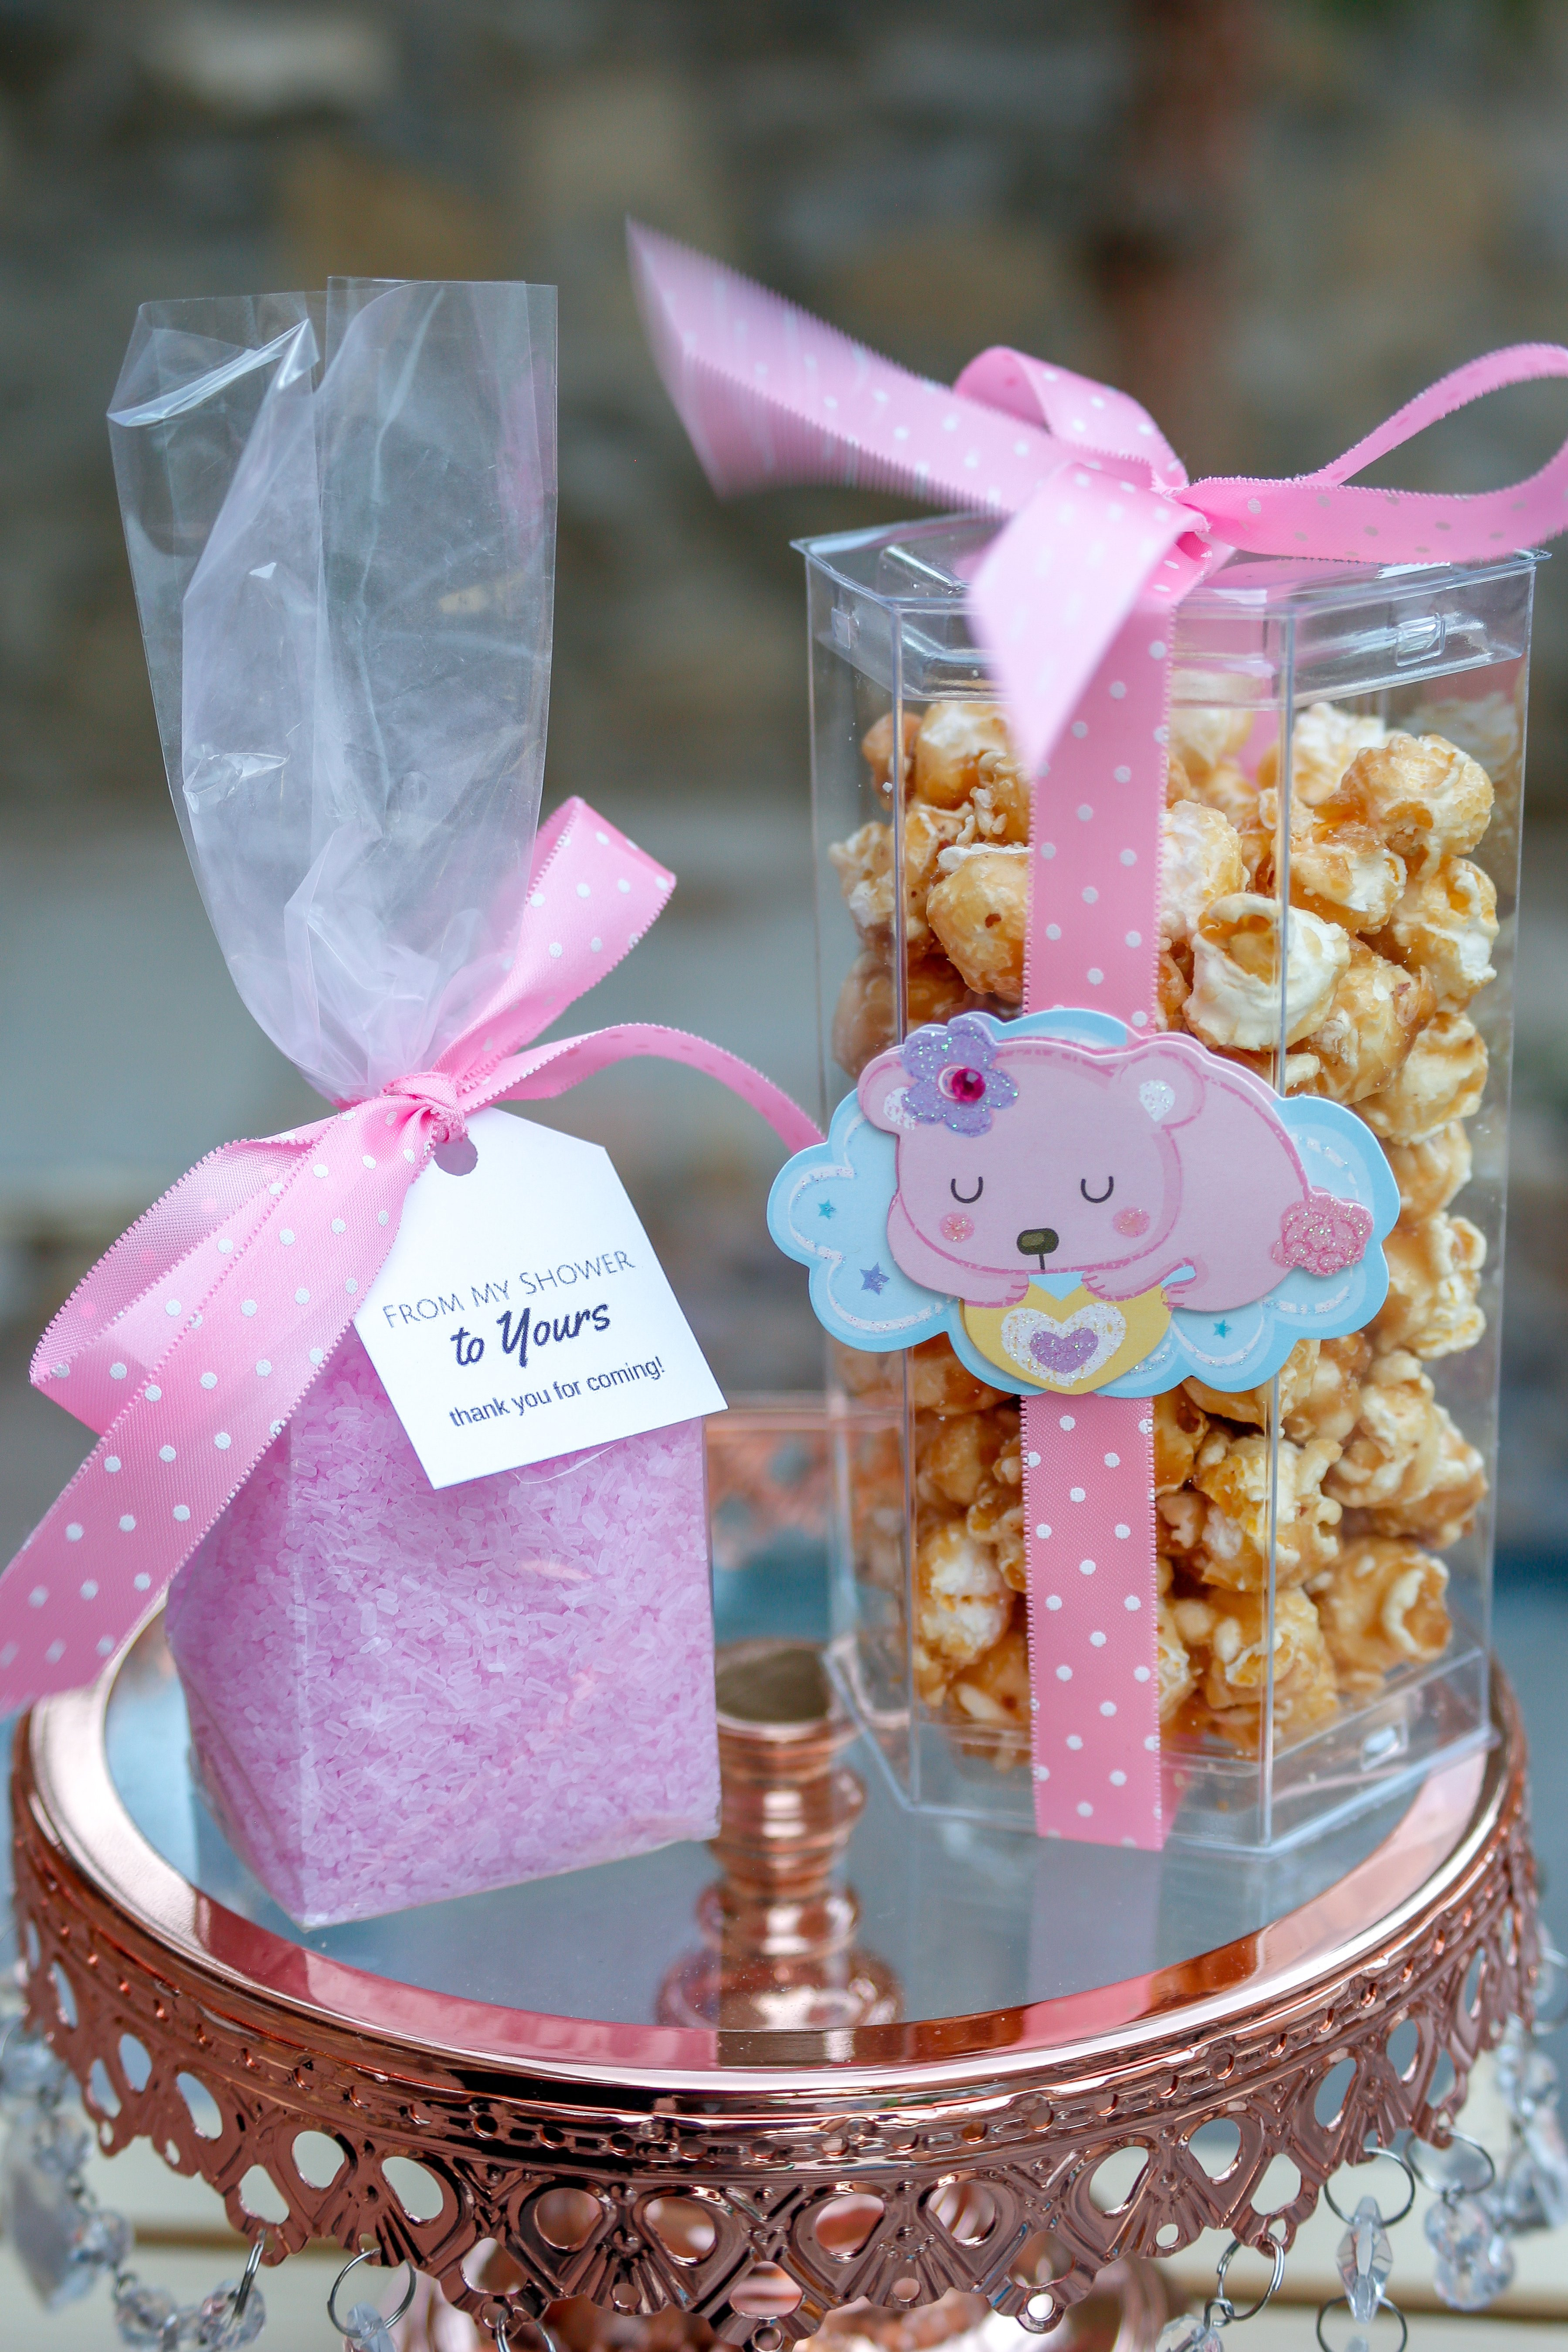 DIY Baby Shower Favors Ideas  DIY Baby Shower Favor Ideas